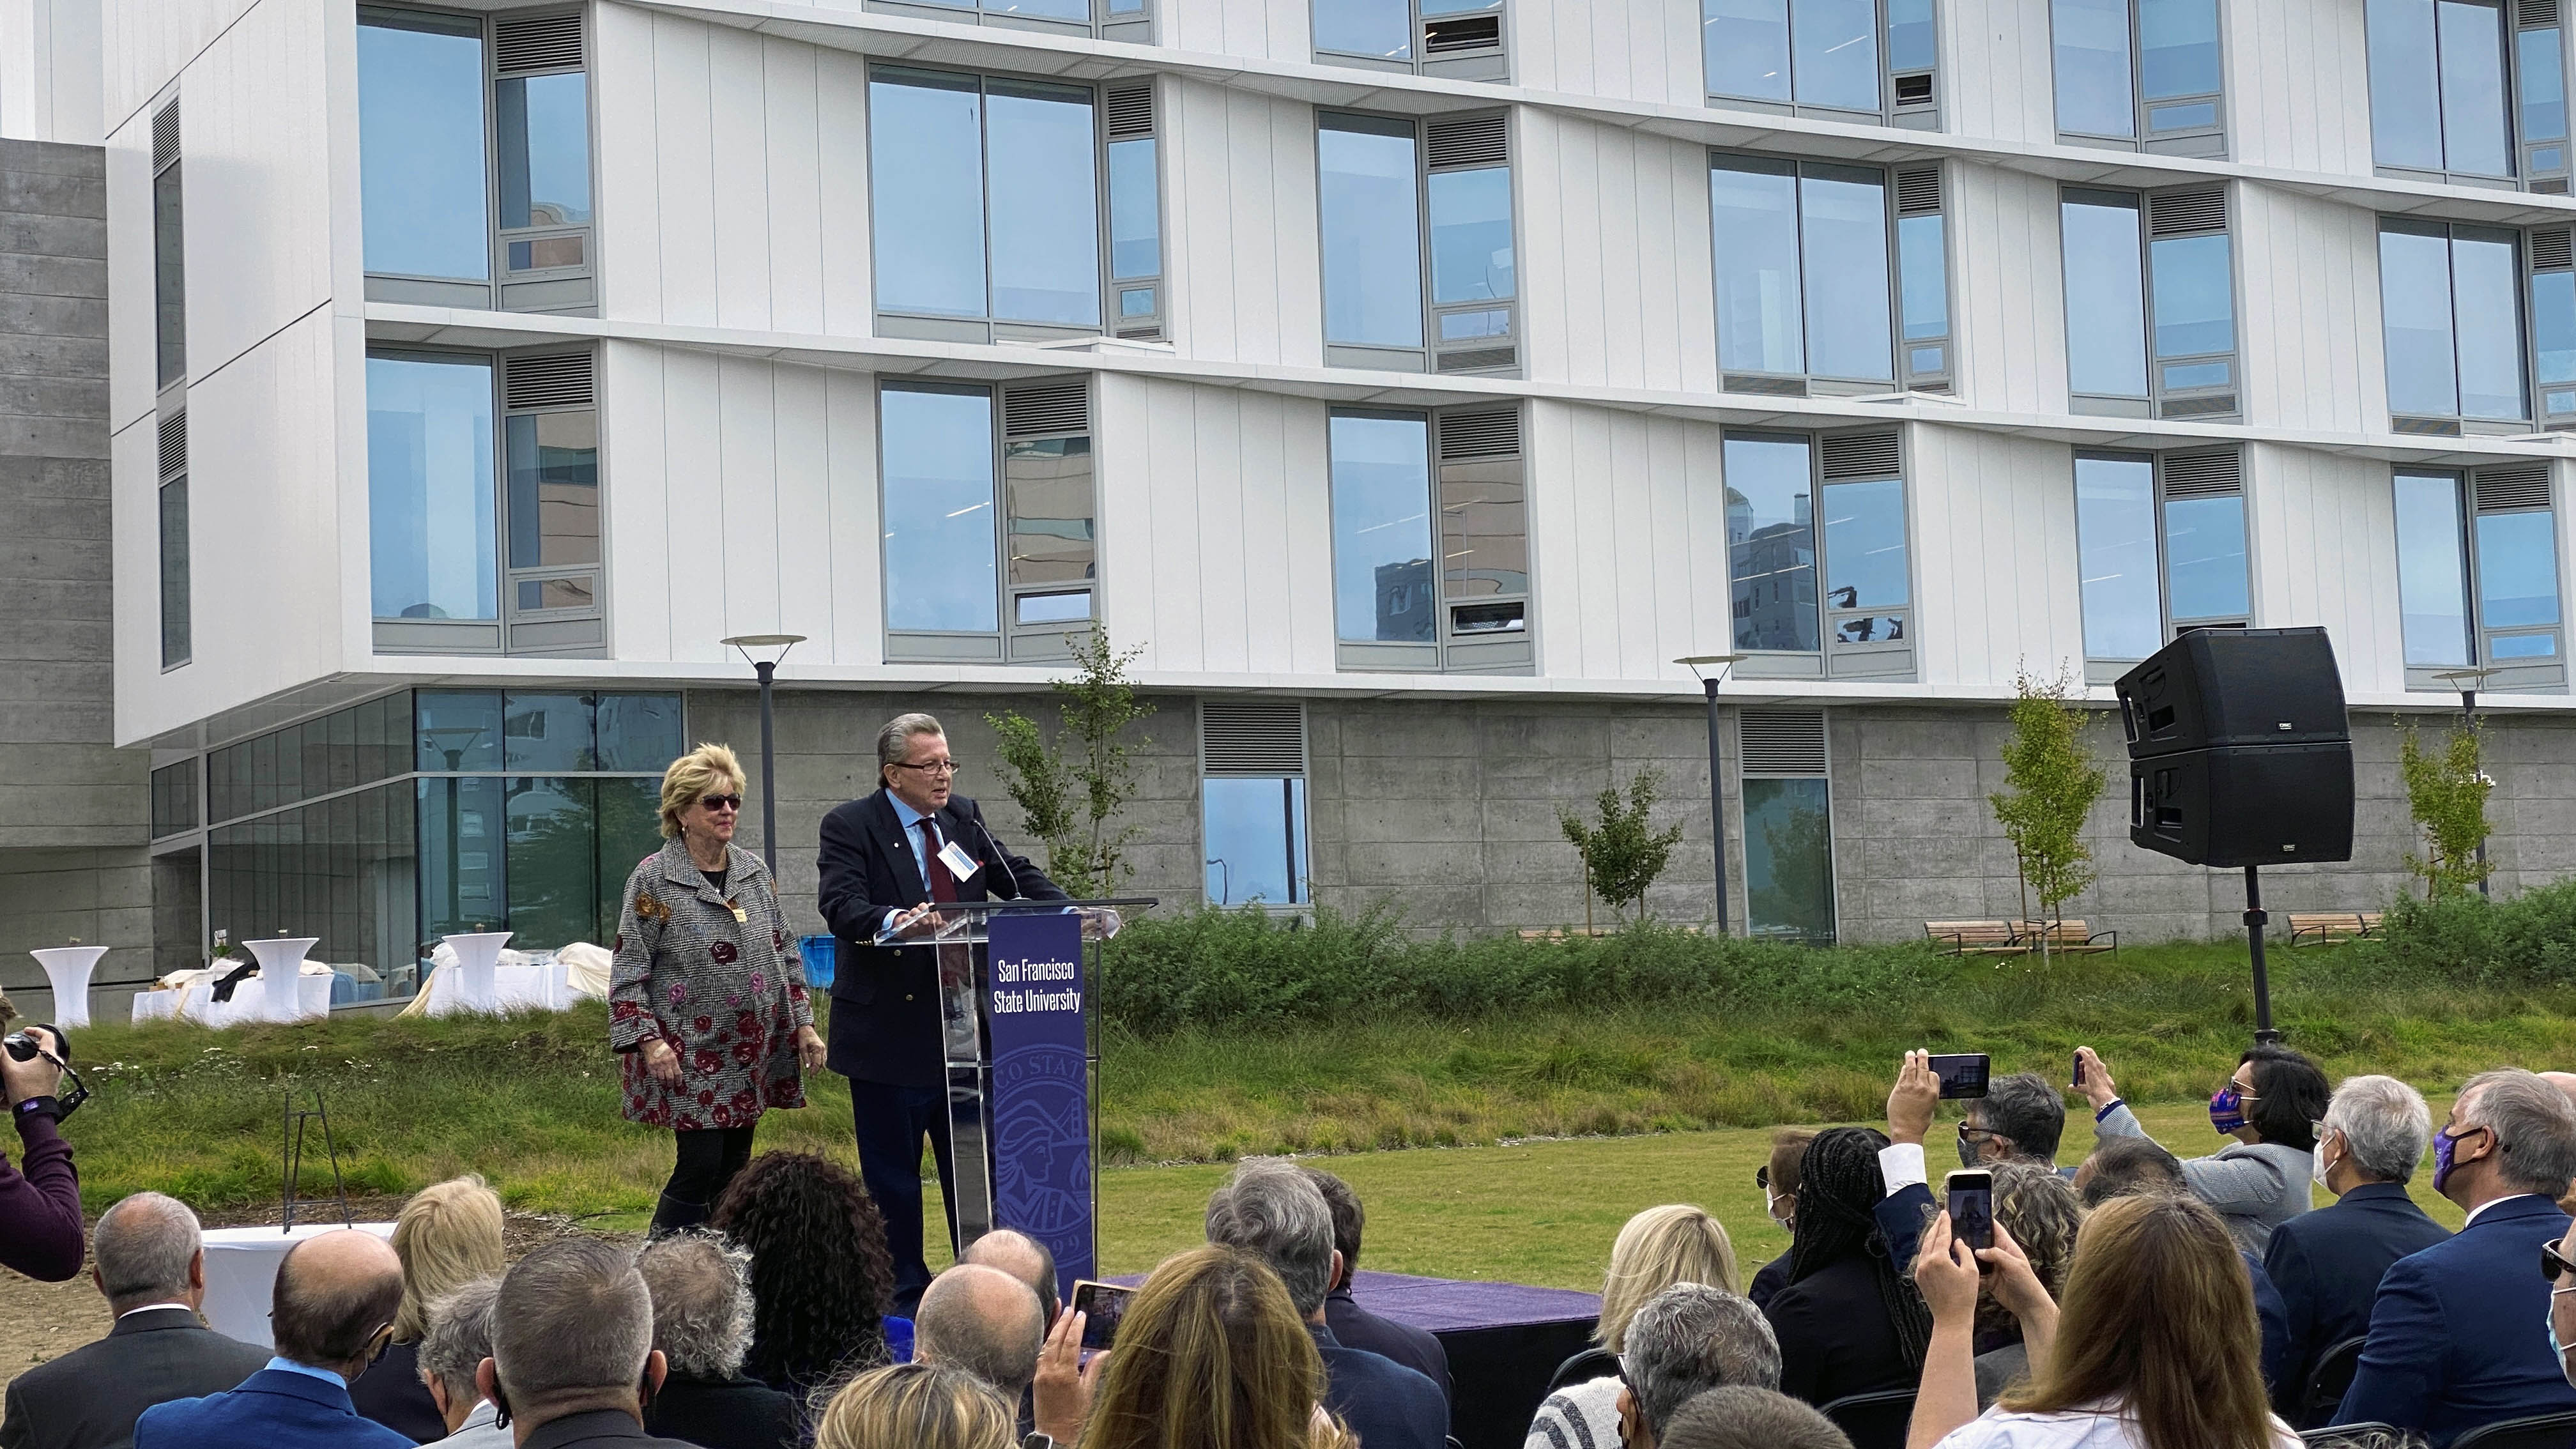 George and Judy Marcus give remarks while standing on a stage in front of Marcus Hall